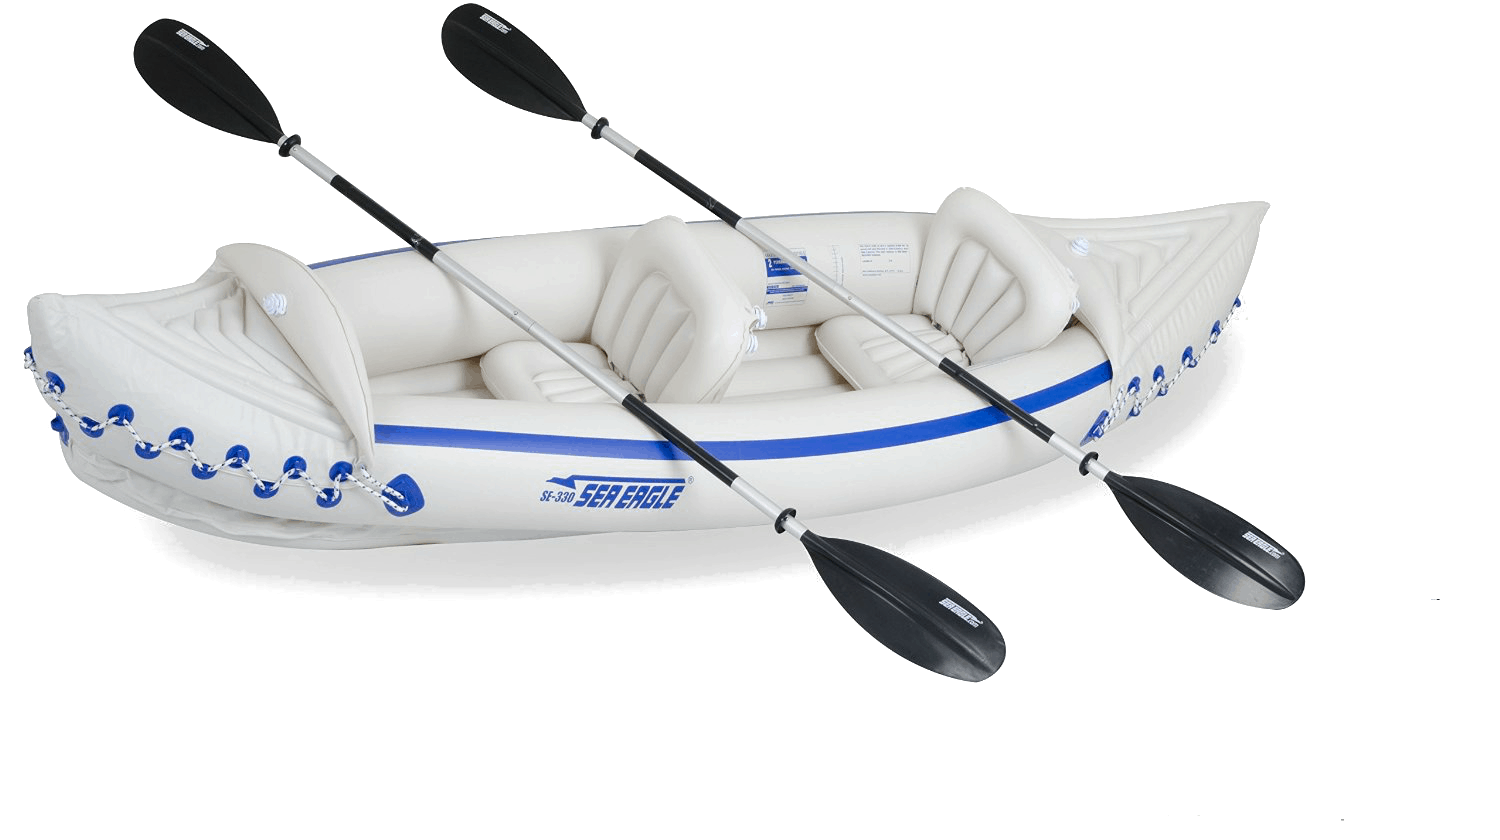 Sea Eagle 330 Best Inflatable Kayak